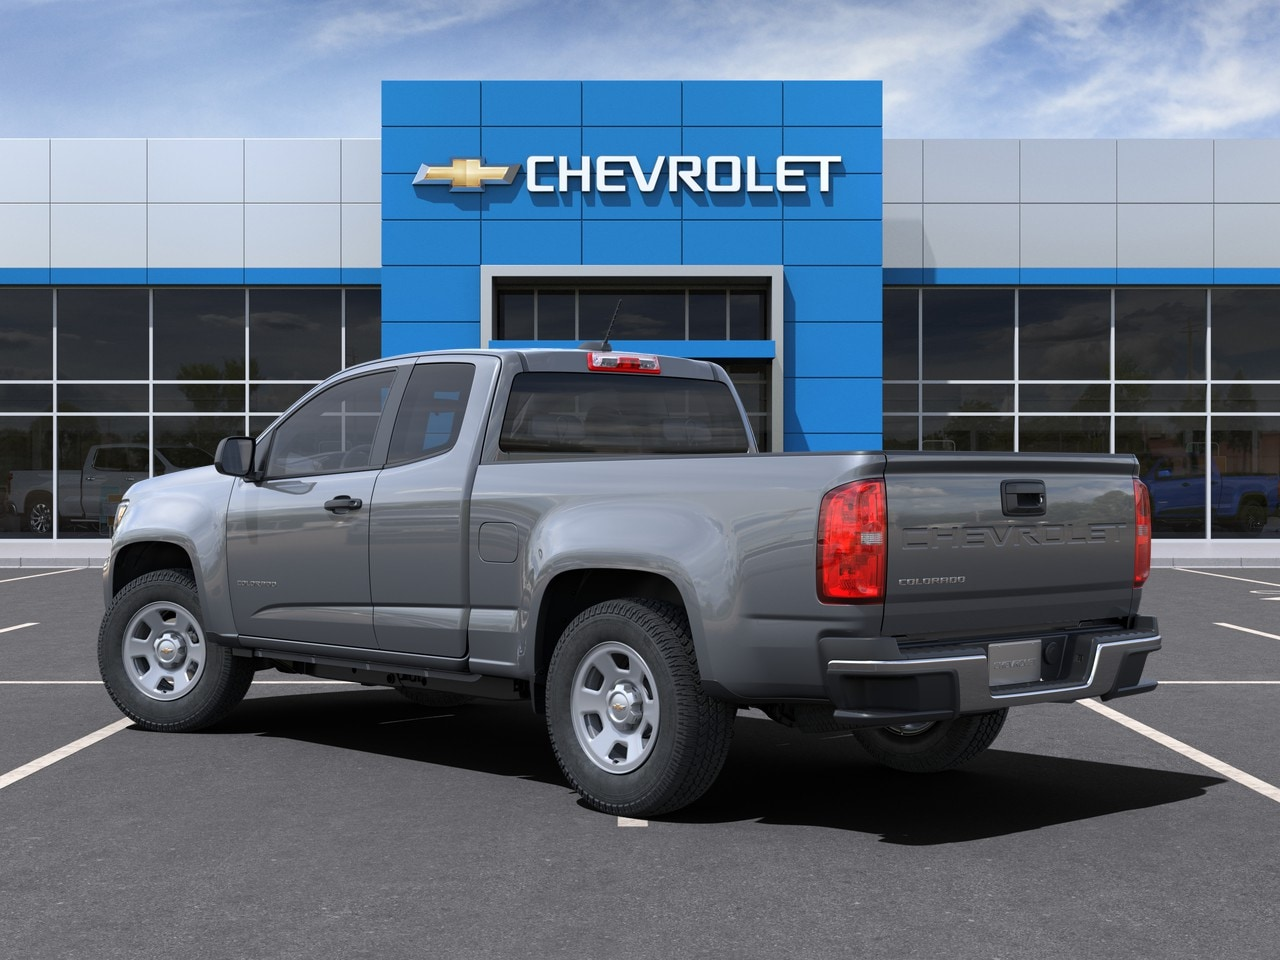 2021 Chevrolet Colorado Extended Cab 4x2, Pickup #M1193360 - photo 2